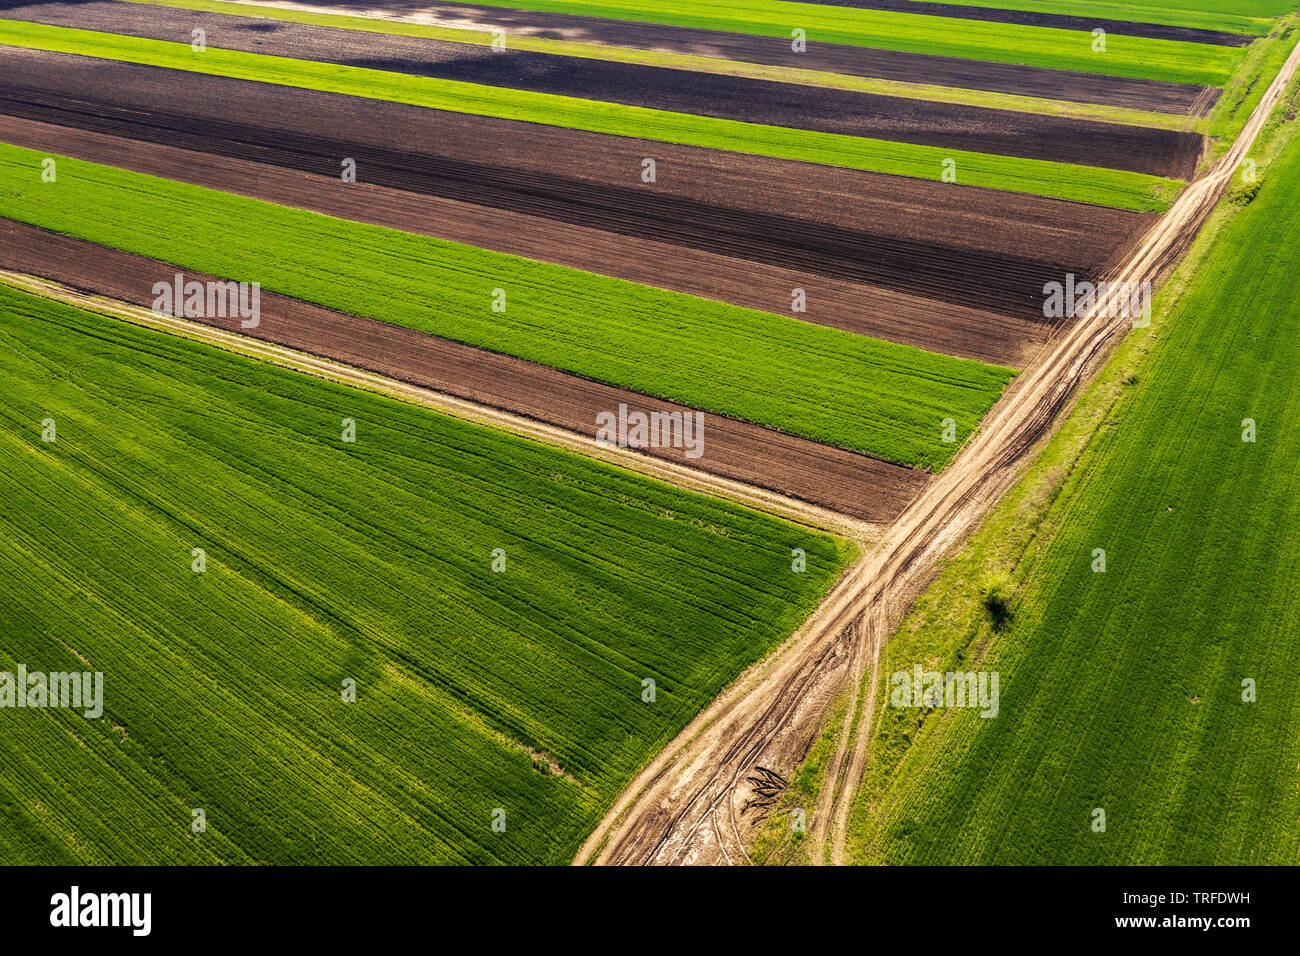 Aerial view of countryside agricultural fields patchwork as abstract background from drone pov Stock Photo